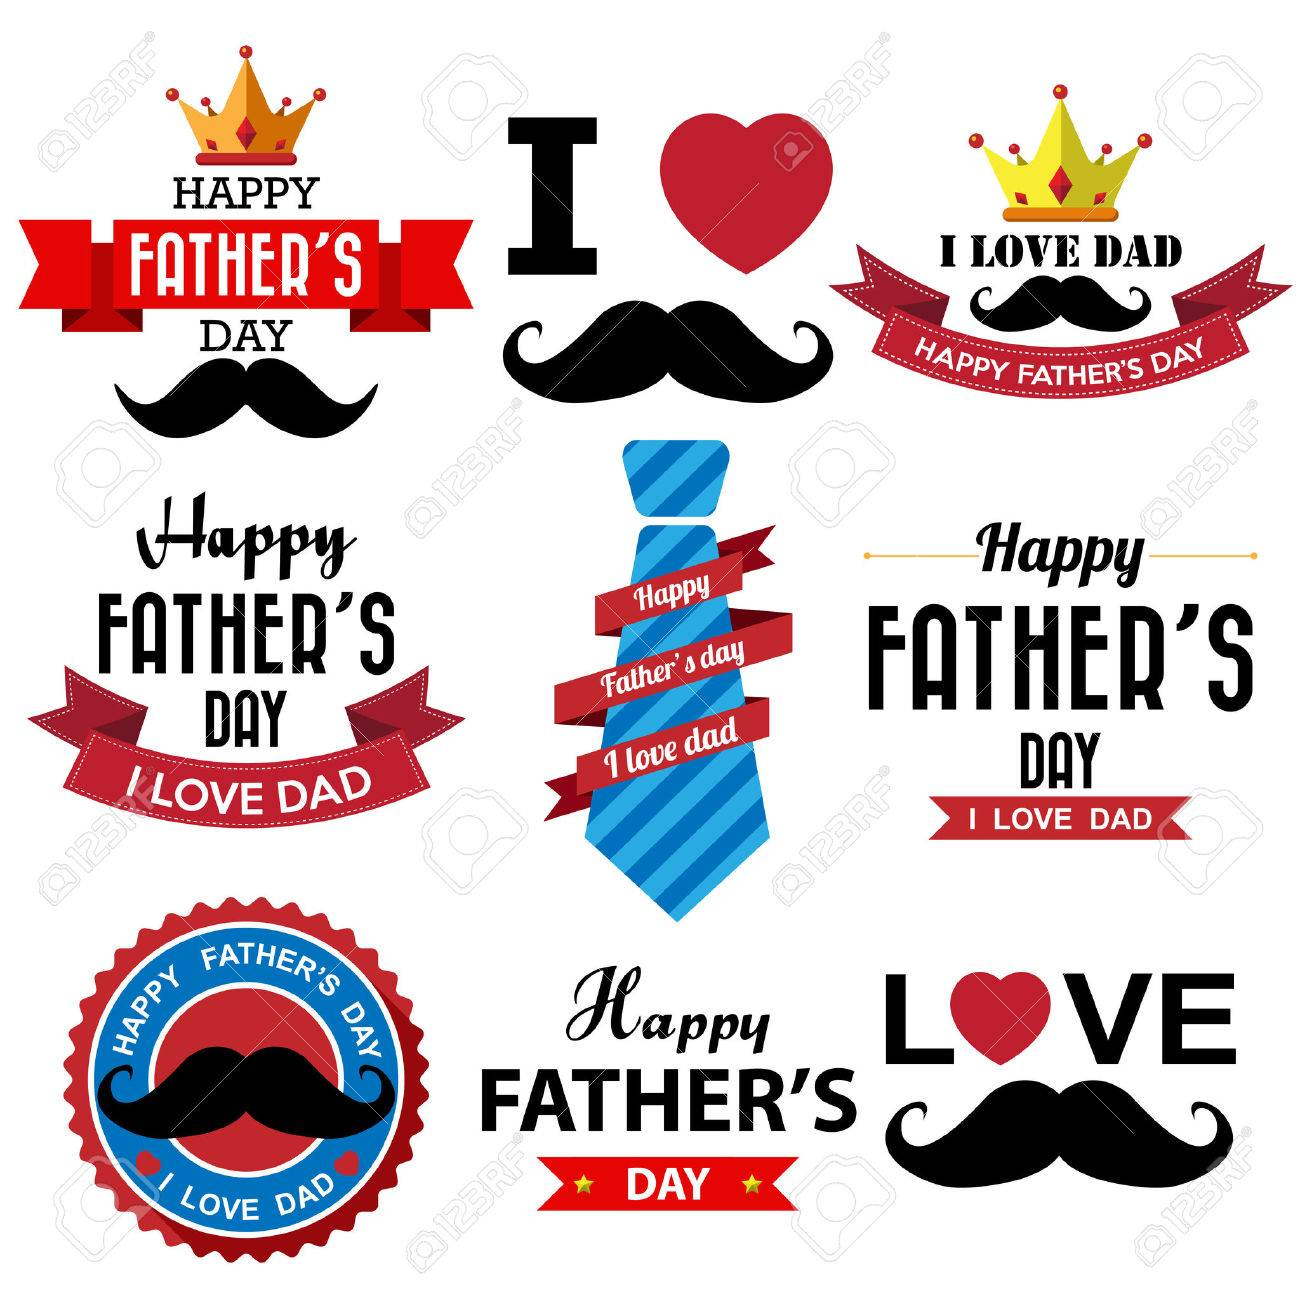 father day stock photos u0026 pictures royalty free father day images